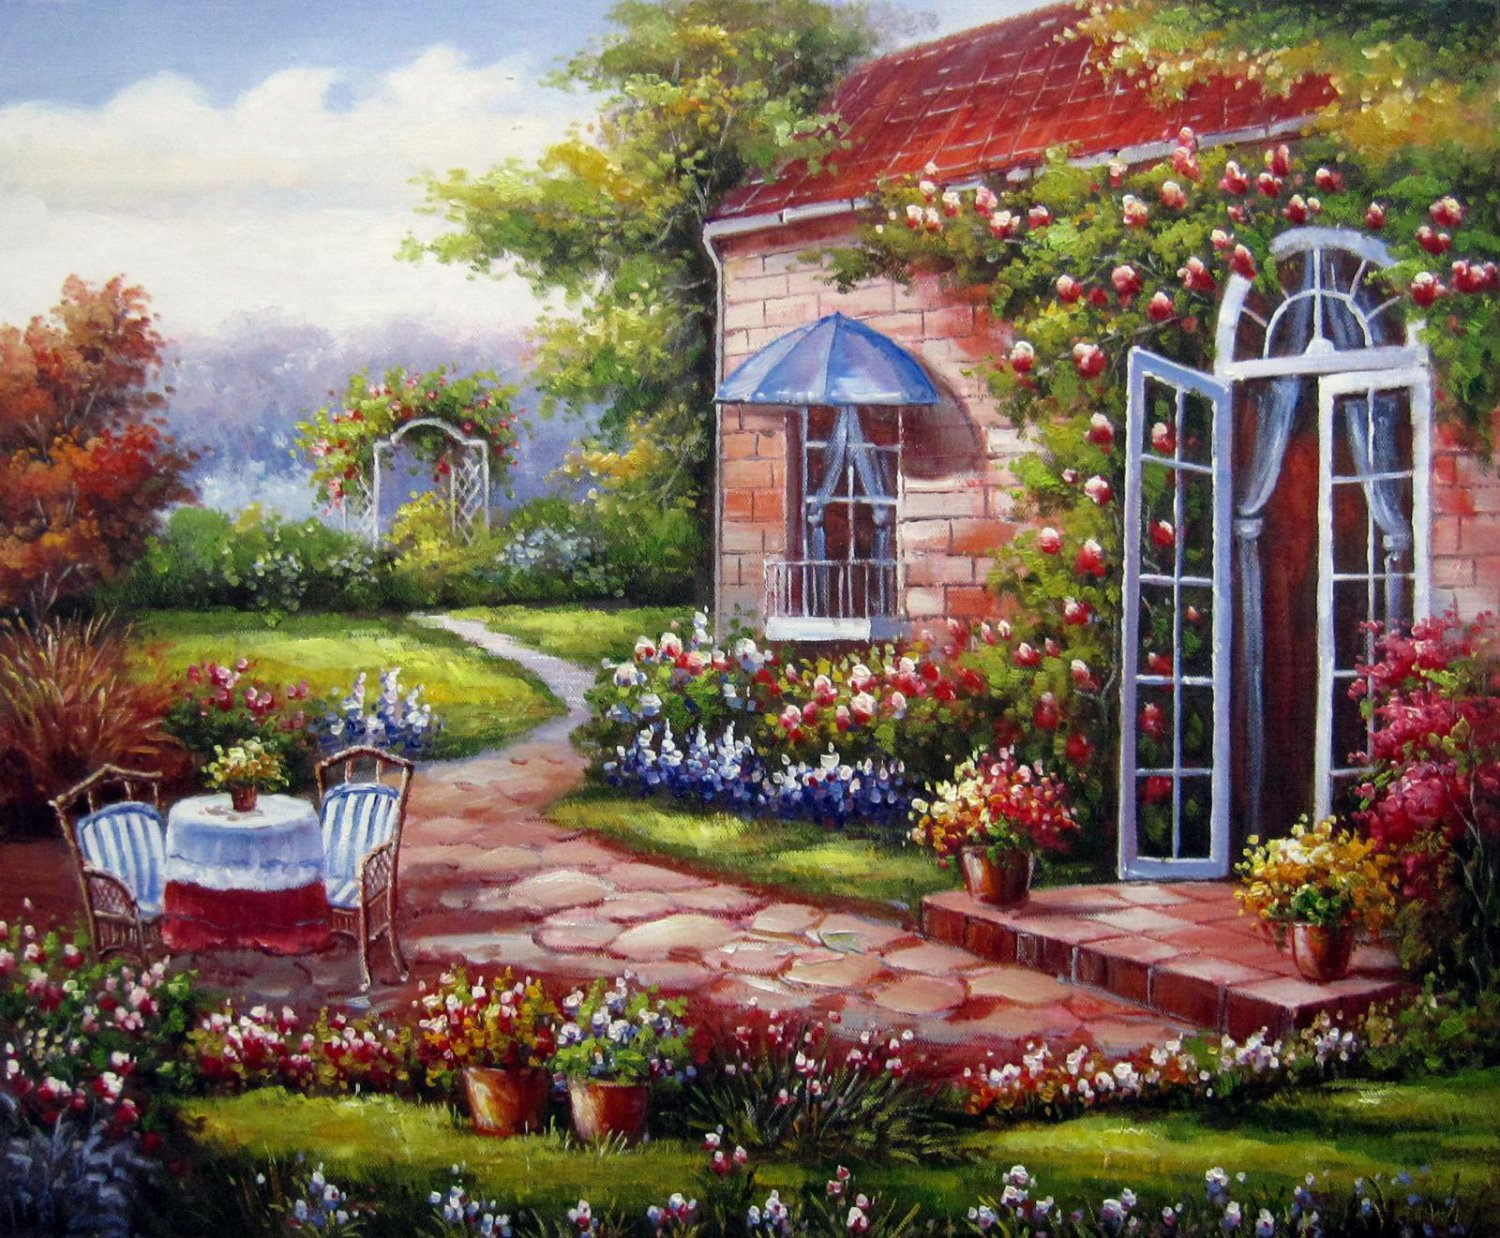 Garden 20x24 in. stretched Oil Painting Canvas Art Wall Decor modern103